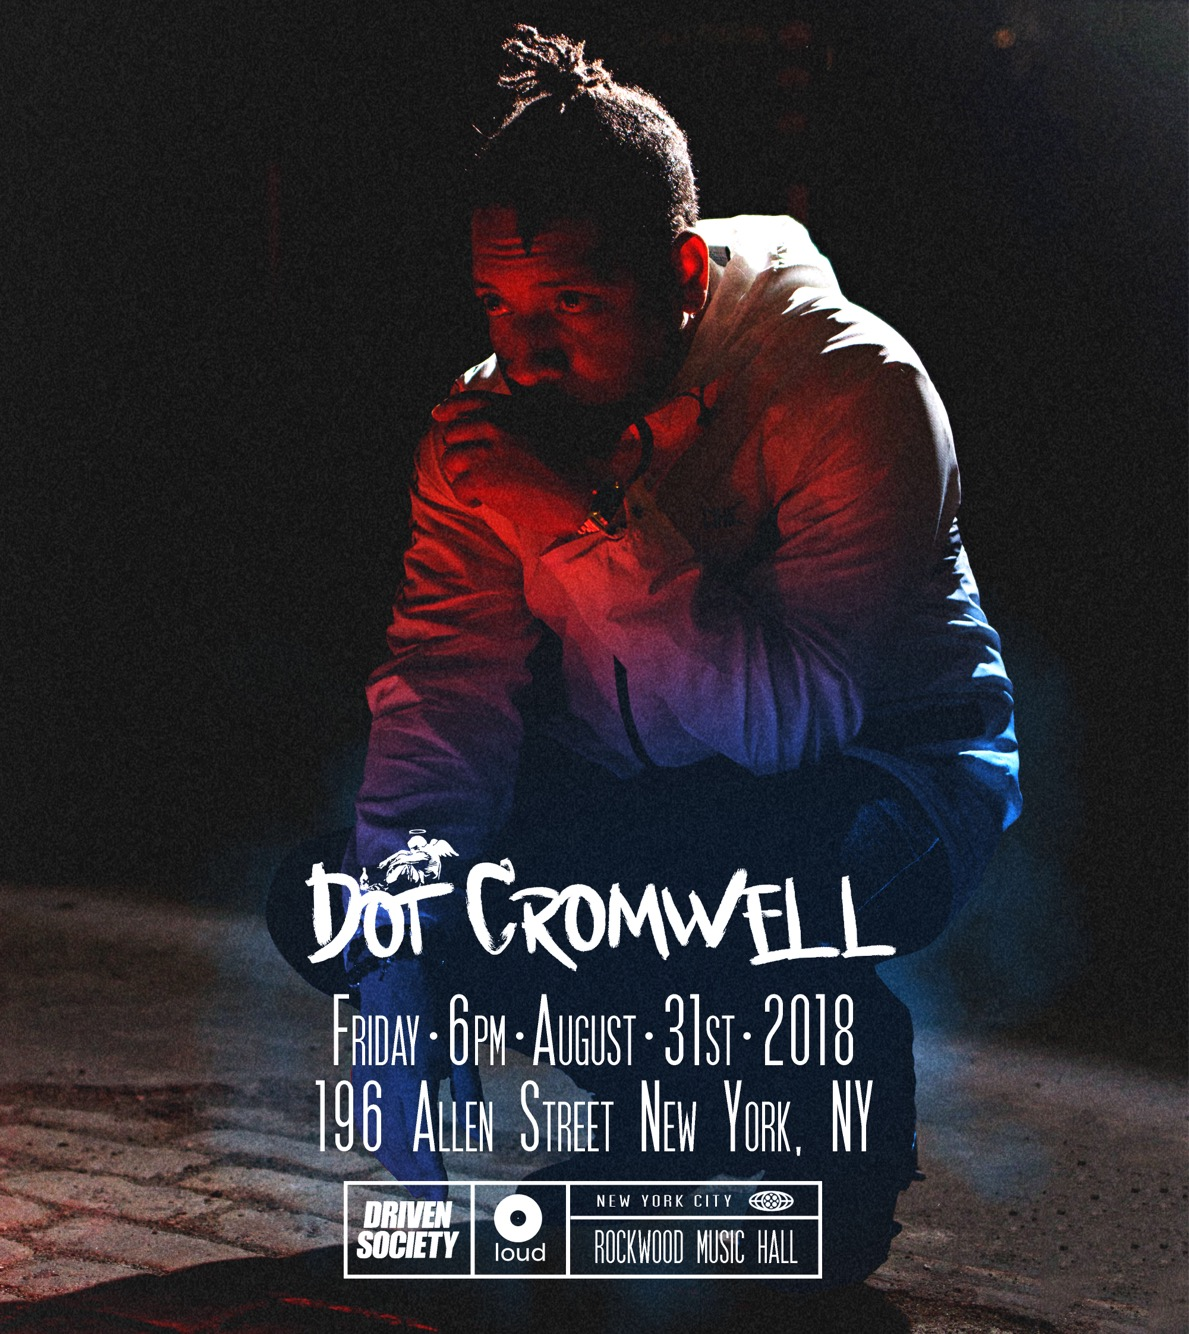 """August 31, 2018 Join us at Rockwood Music Hall for Dot Cromwell's """"Cold Summer"""" performance, 6pm sharp! As always Dot will be rocking with his live band and if you've been to a show before then you already know that the shots of Jameson will be pouring! Early arrival is suggested as seating will fill quickly.                                    RSVP HERE"""